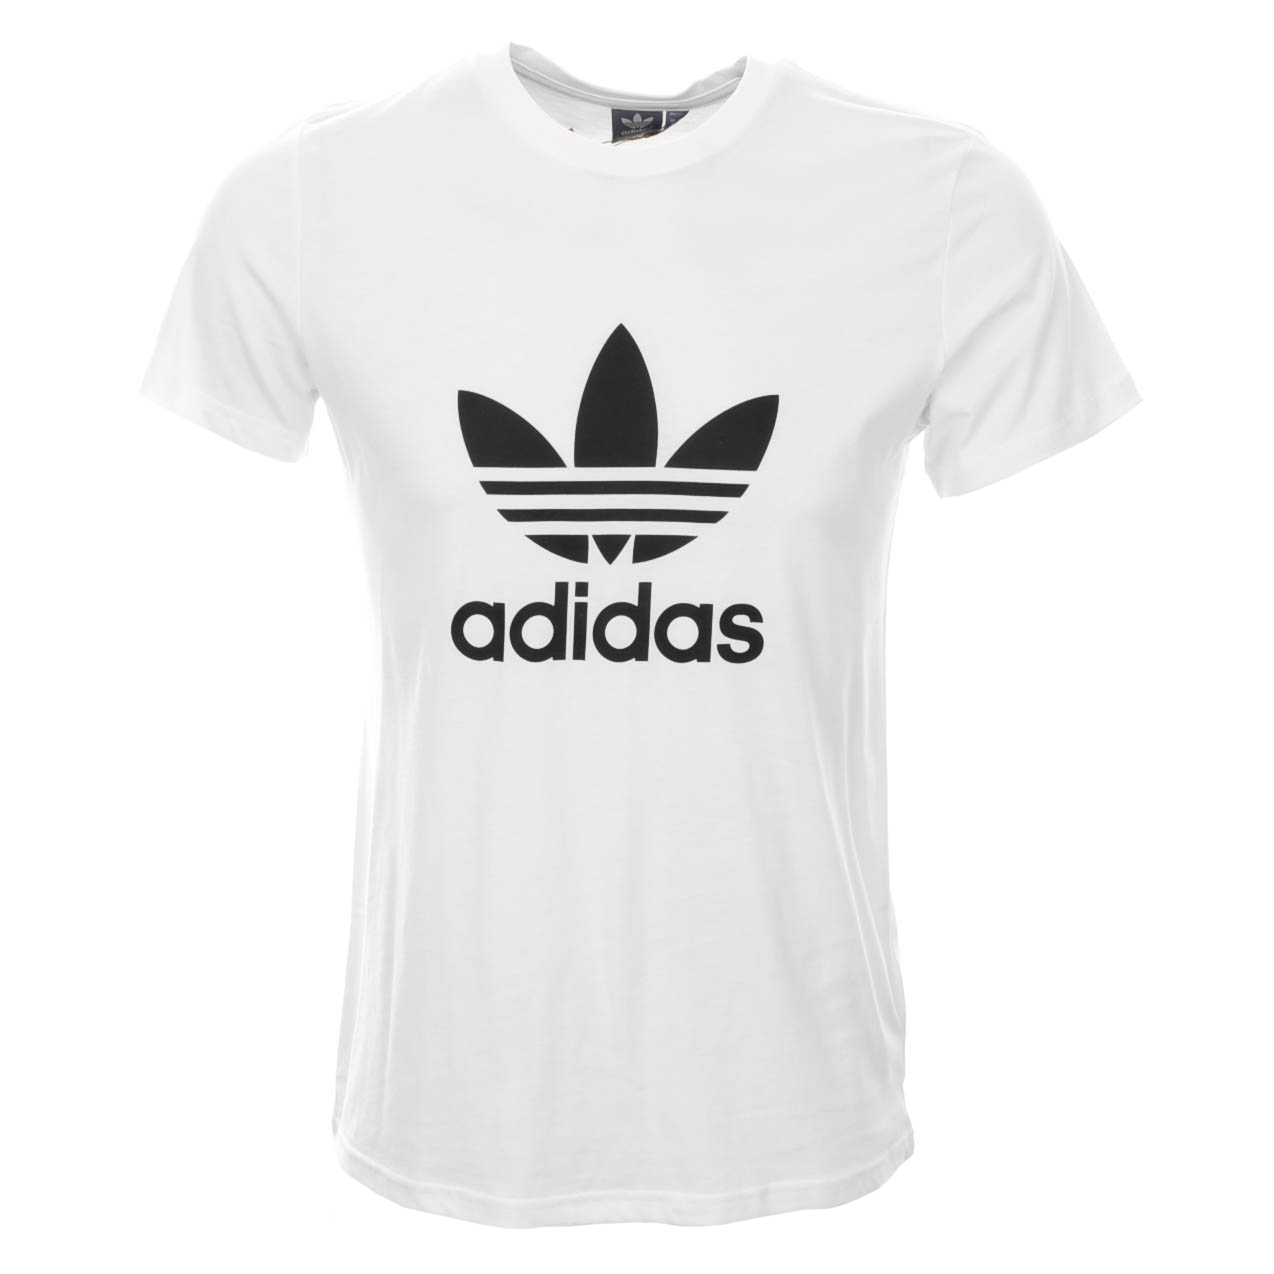 Adidas Originals Trefoil Logo T Shirt White